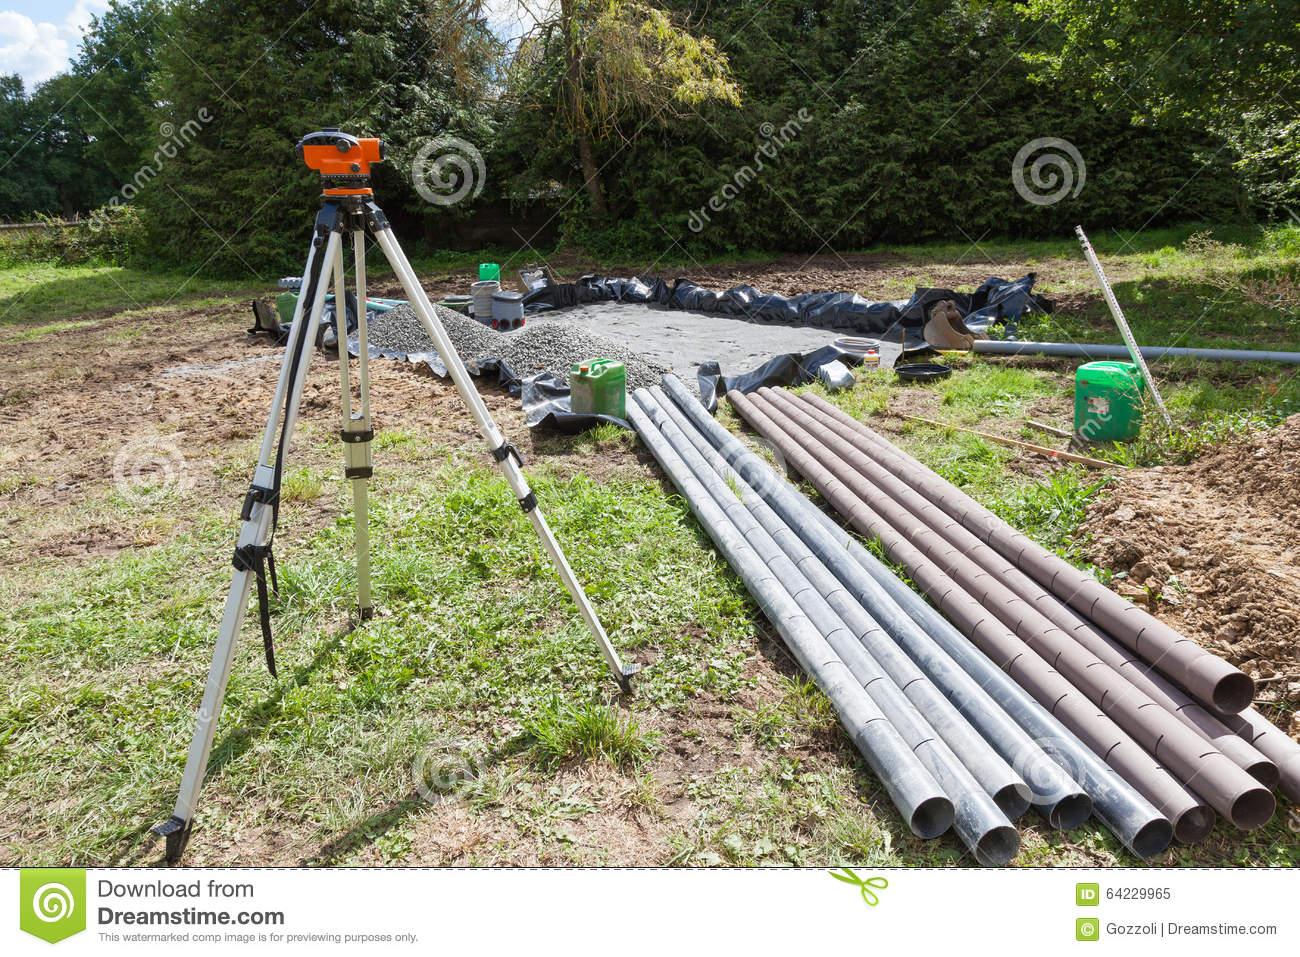 Using a theodolite to instal a gravel filter bed on a septic tank